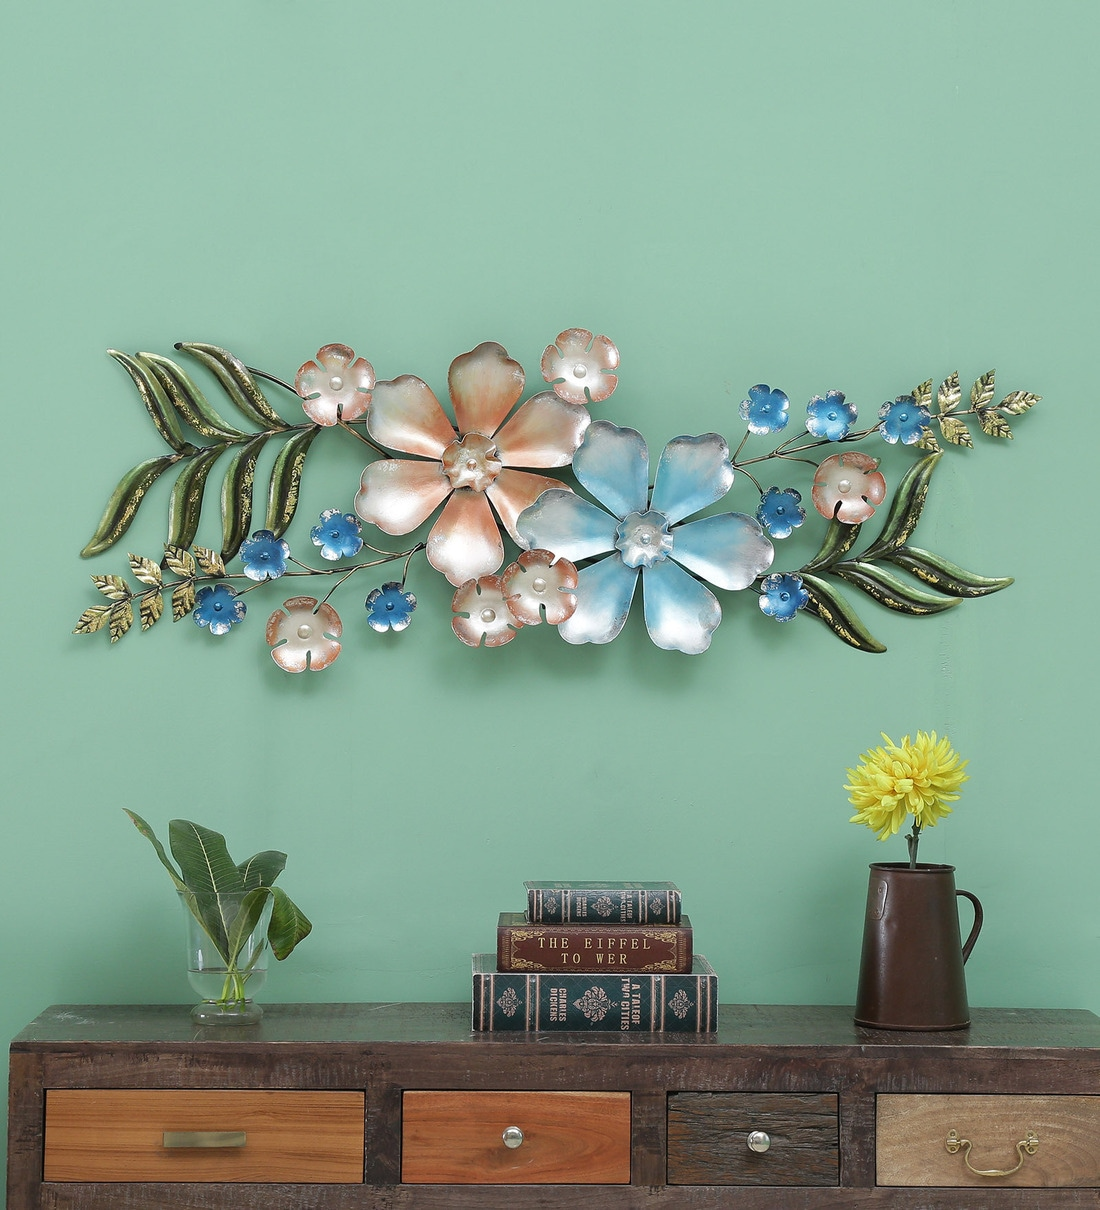 Buy Wrought Iron Floral In Multicolour Wall Art By The Shining Rays Online Floral Metal Art Metal Wall Art Home Decor Pepperfry Product